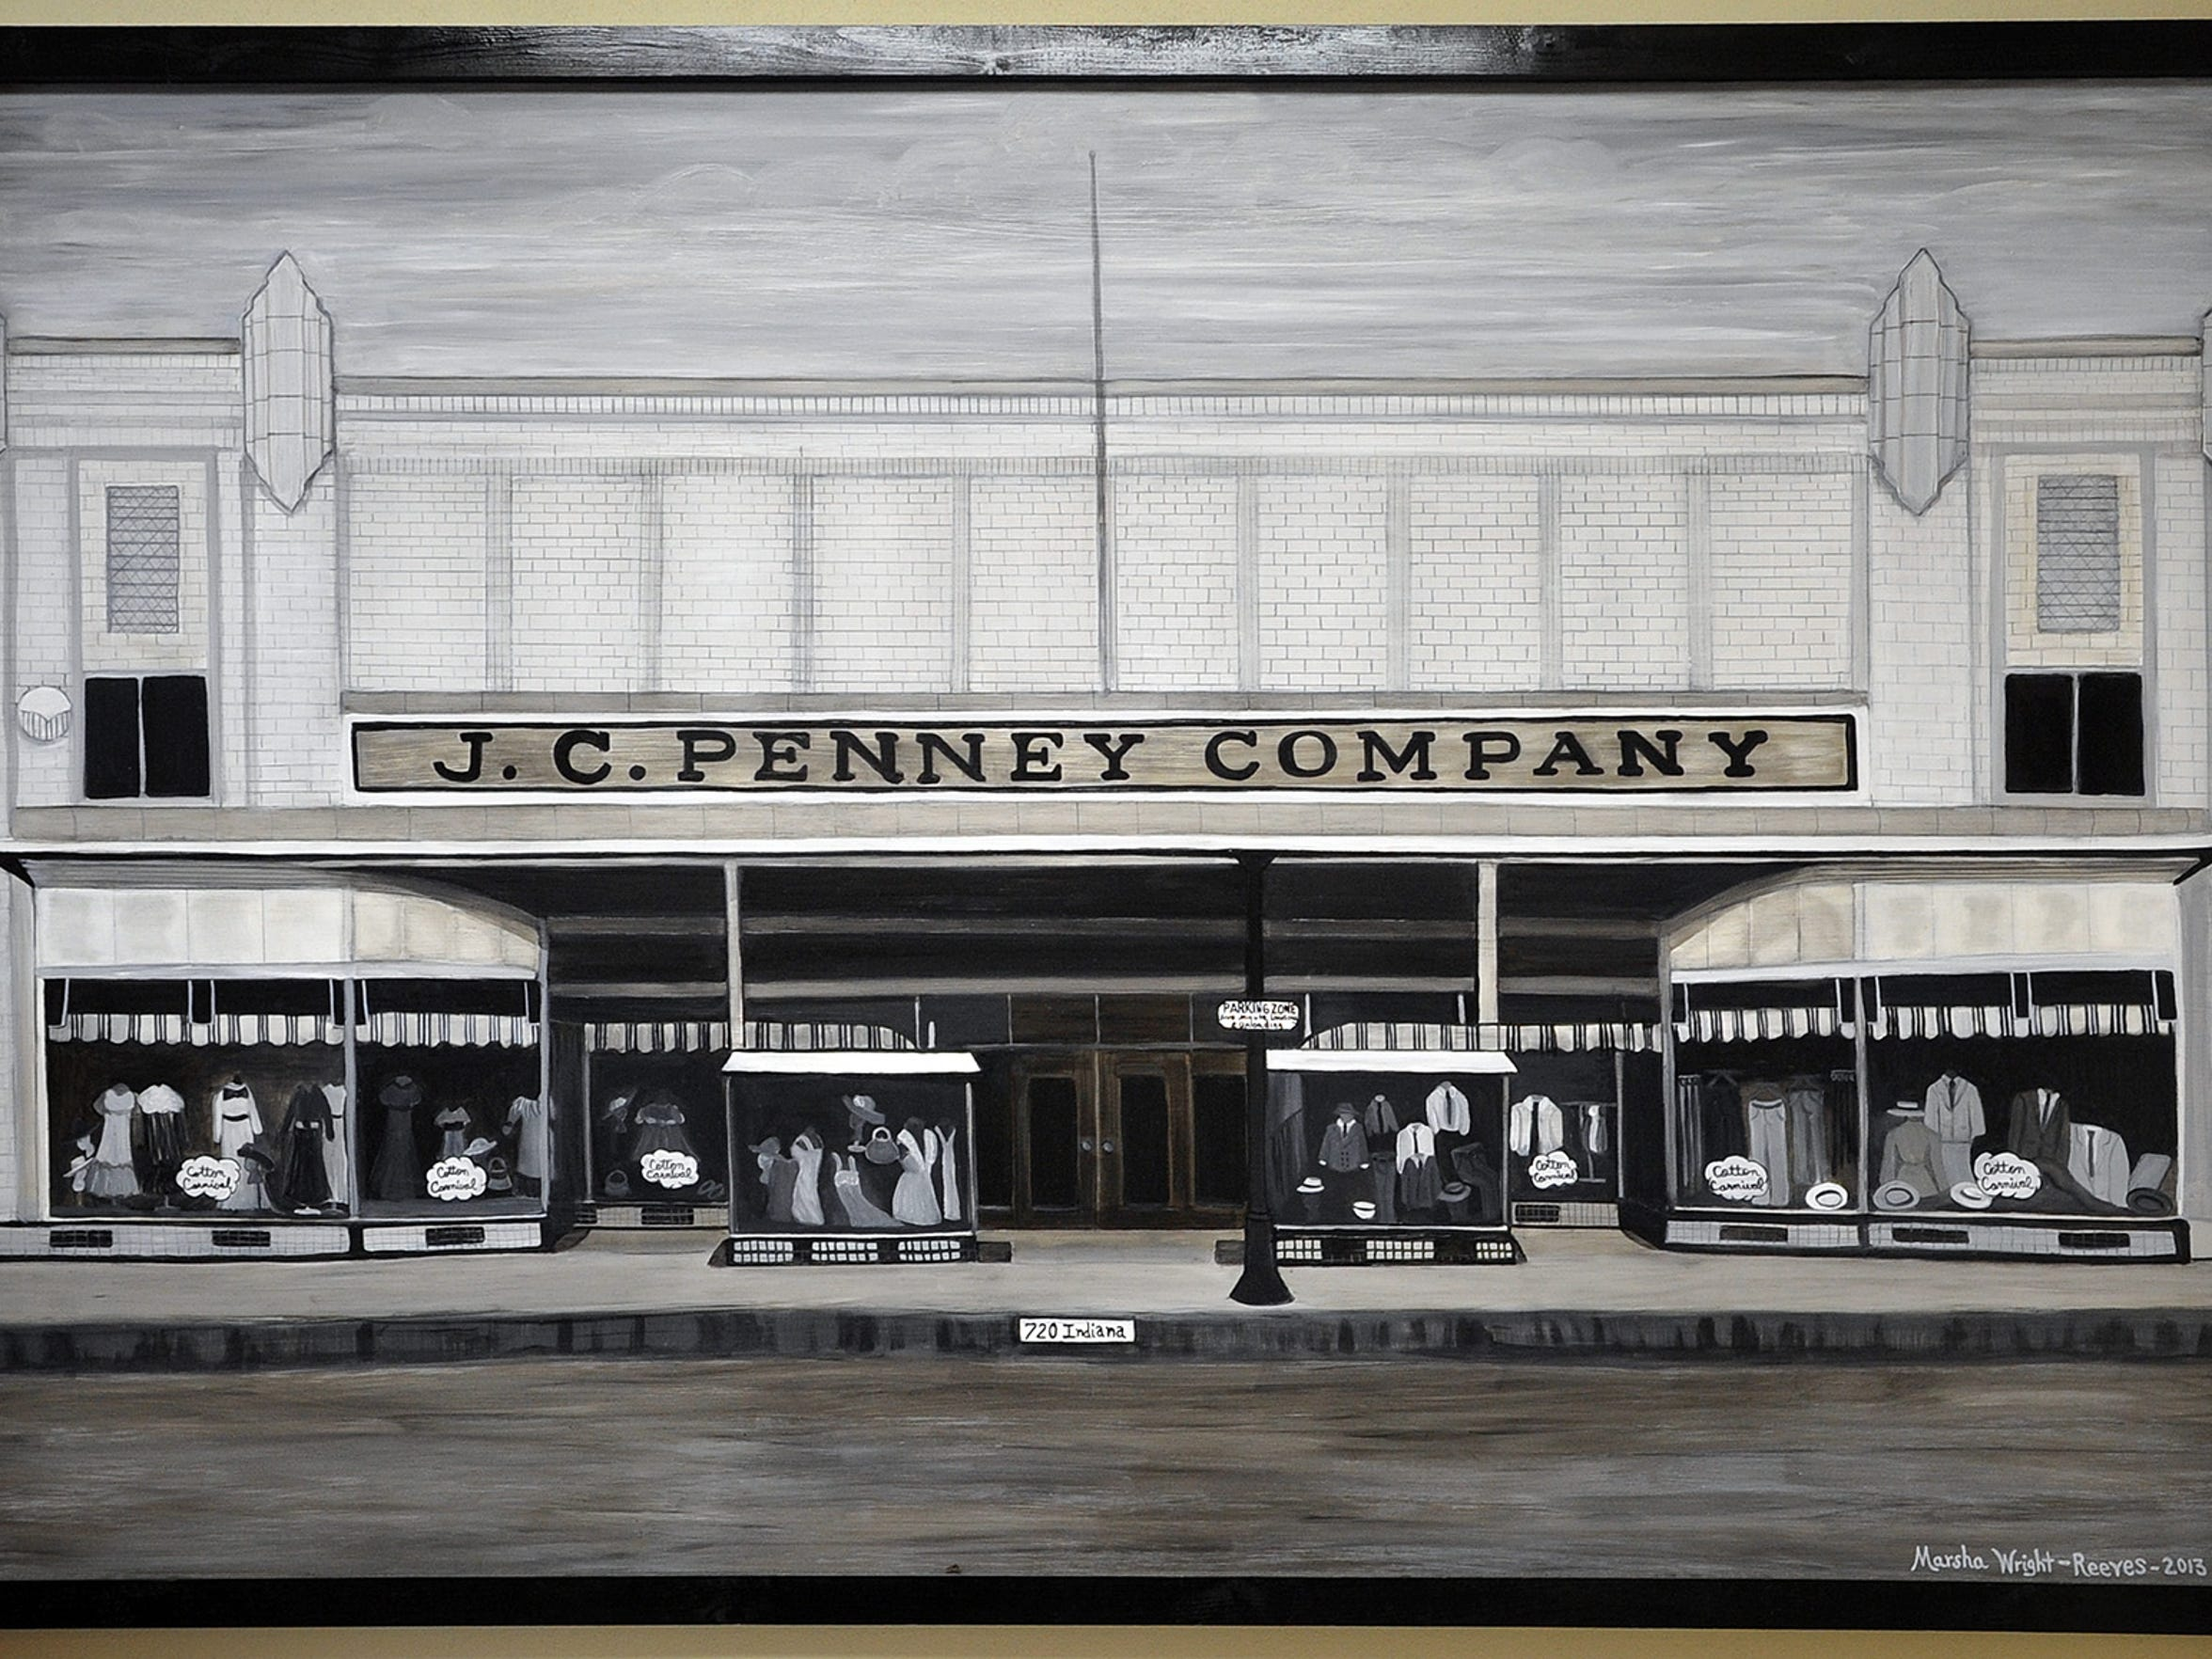 A painting by local artist Marsha Wright-Reeves depicts the original JCPenney storefront, which opened in 1917 and at 720 Indiana. The painting hangs in the Museum of North Texas History, which is located at the same address, but in a newer building.